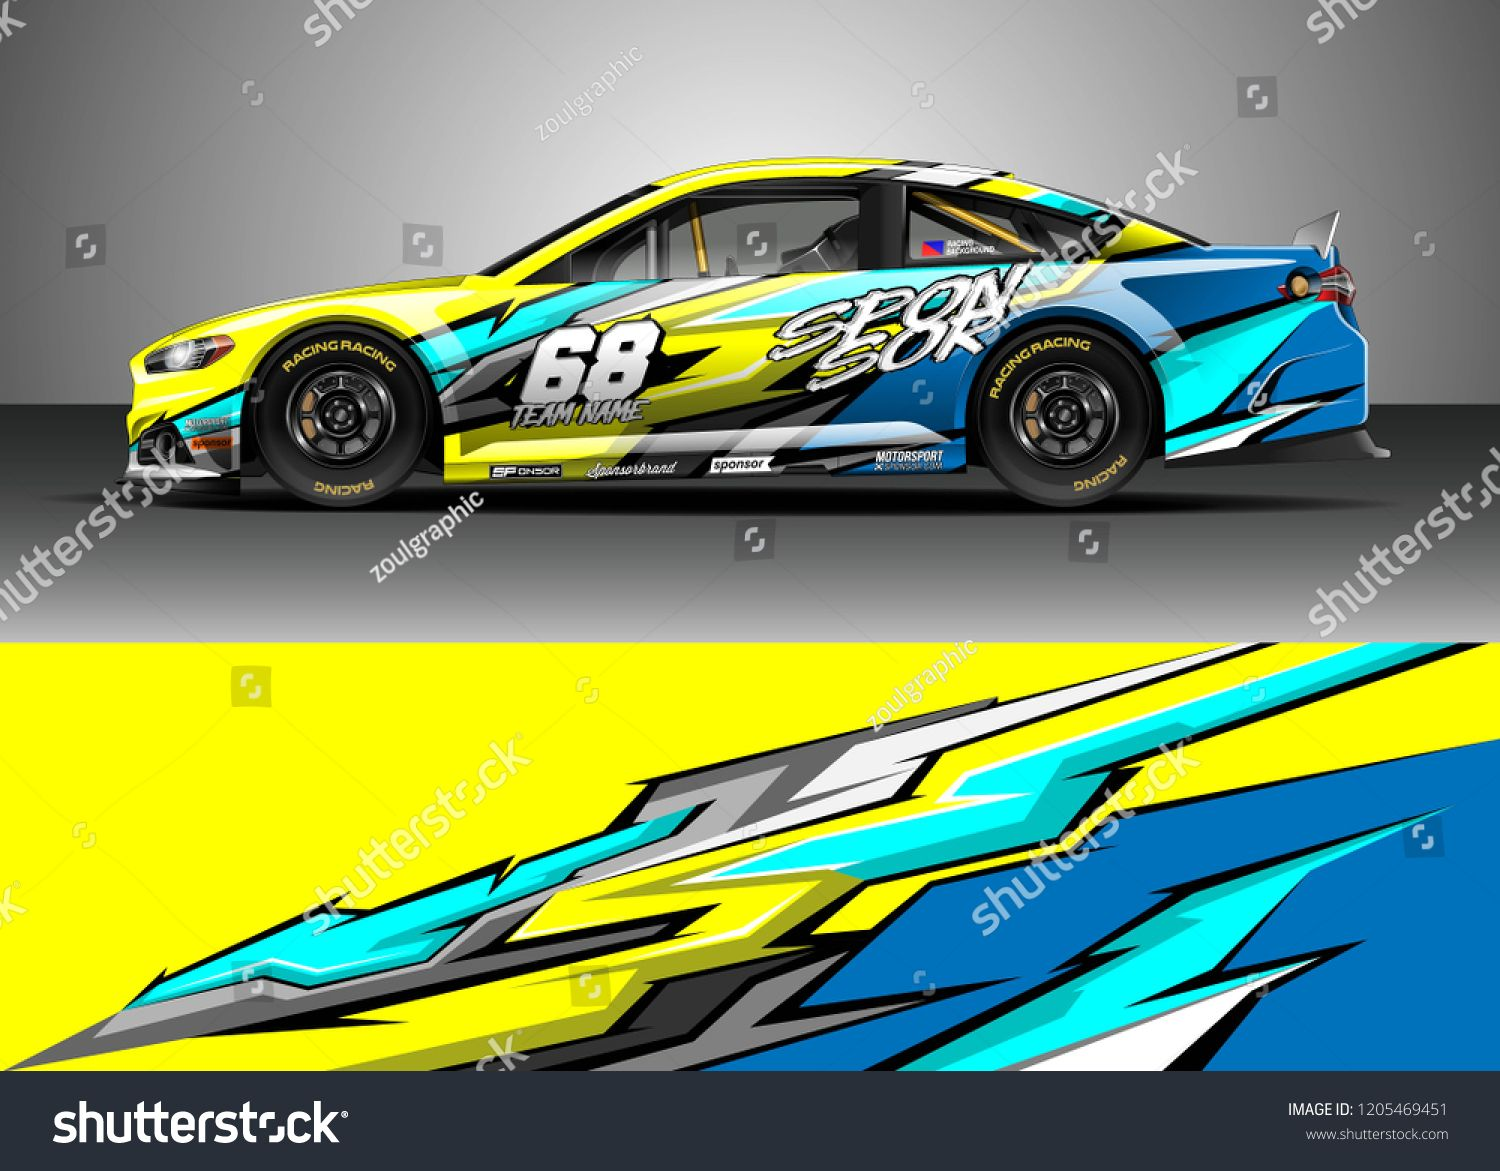 Racing Car Wrap Design Vector Graphic Abstract Stripe Racing Background Kit Designs For Wrap Vehicle Race Car Ral Car Wrap Racing Car Design Car Wrap Design